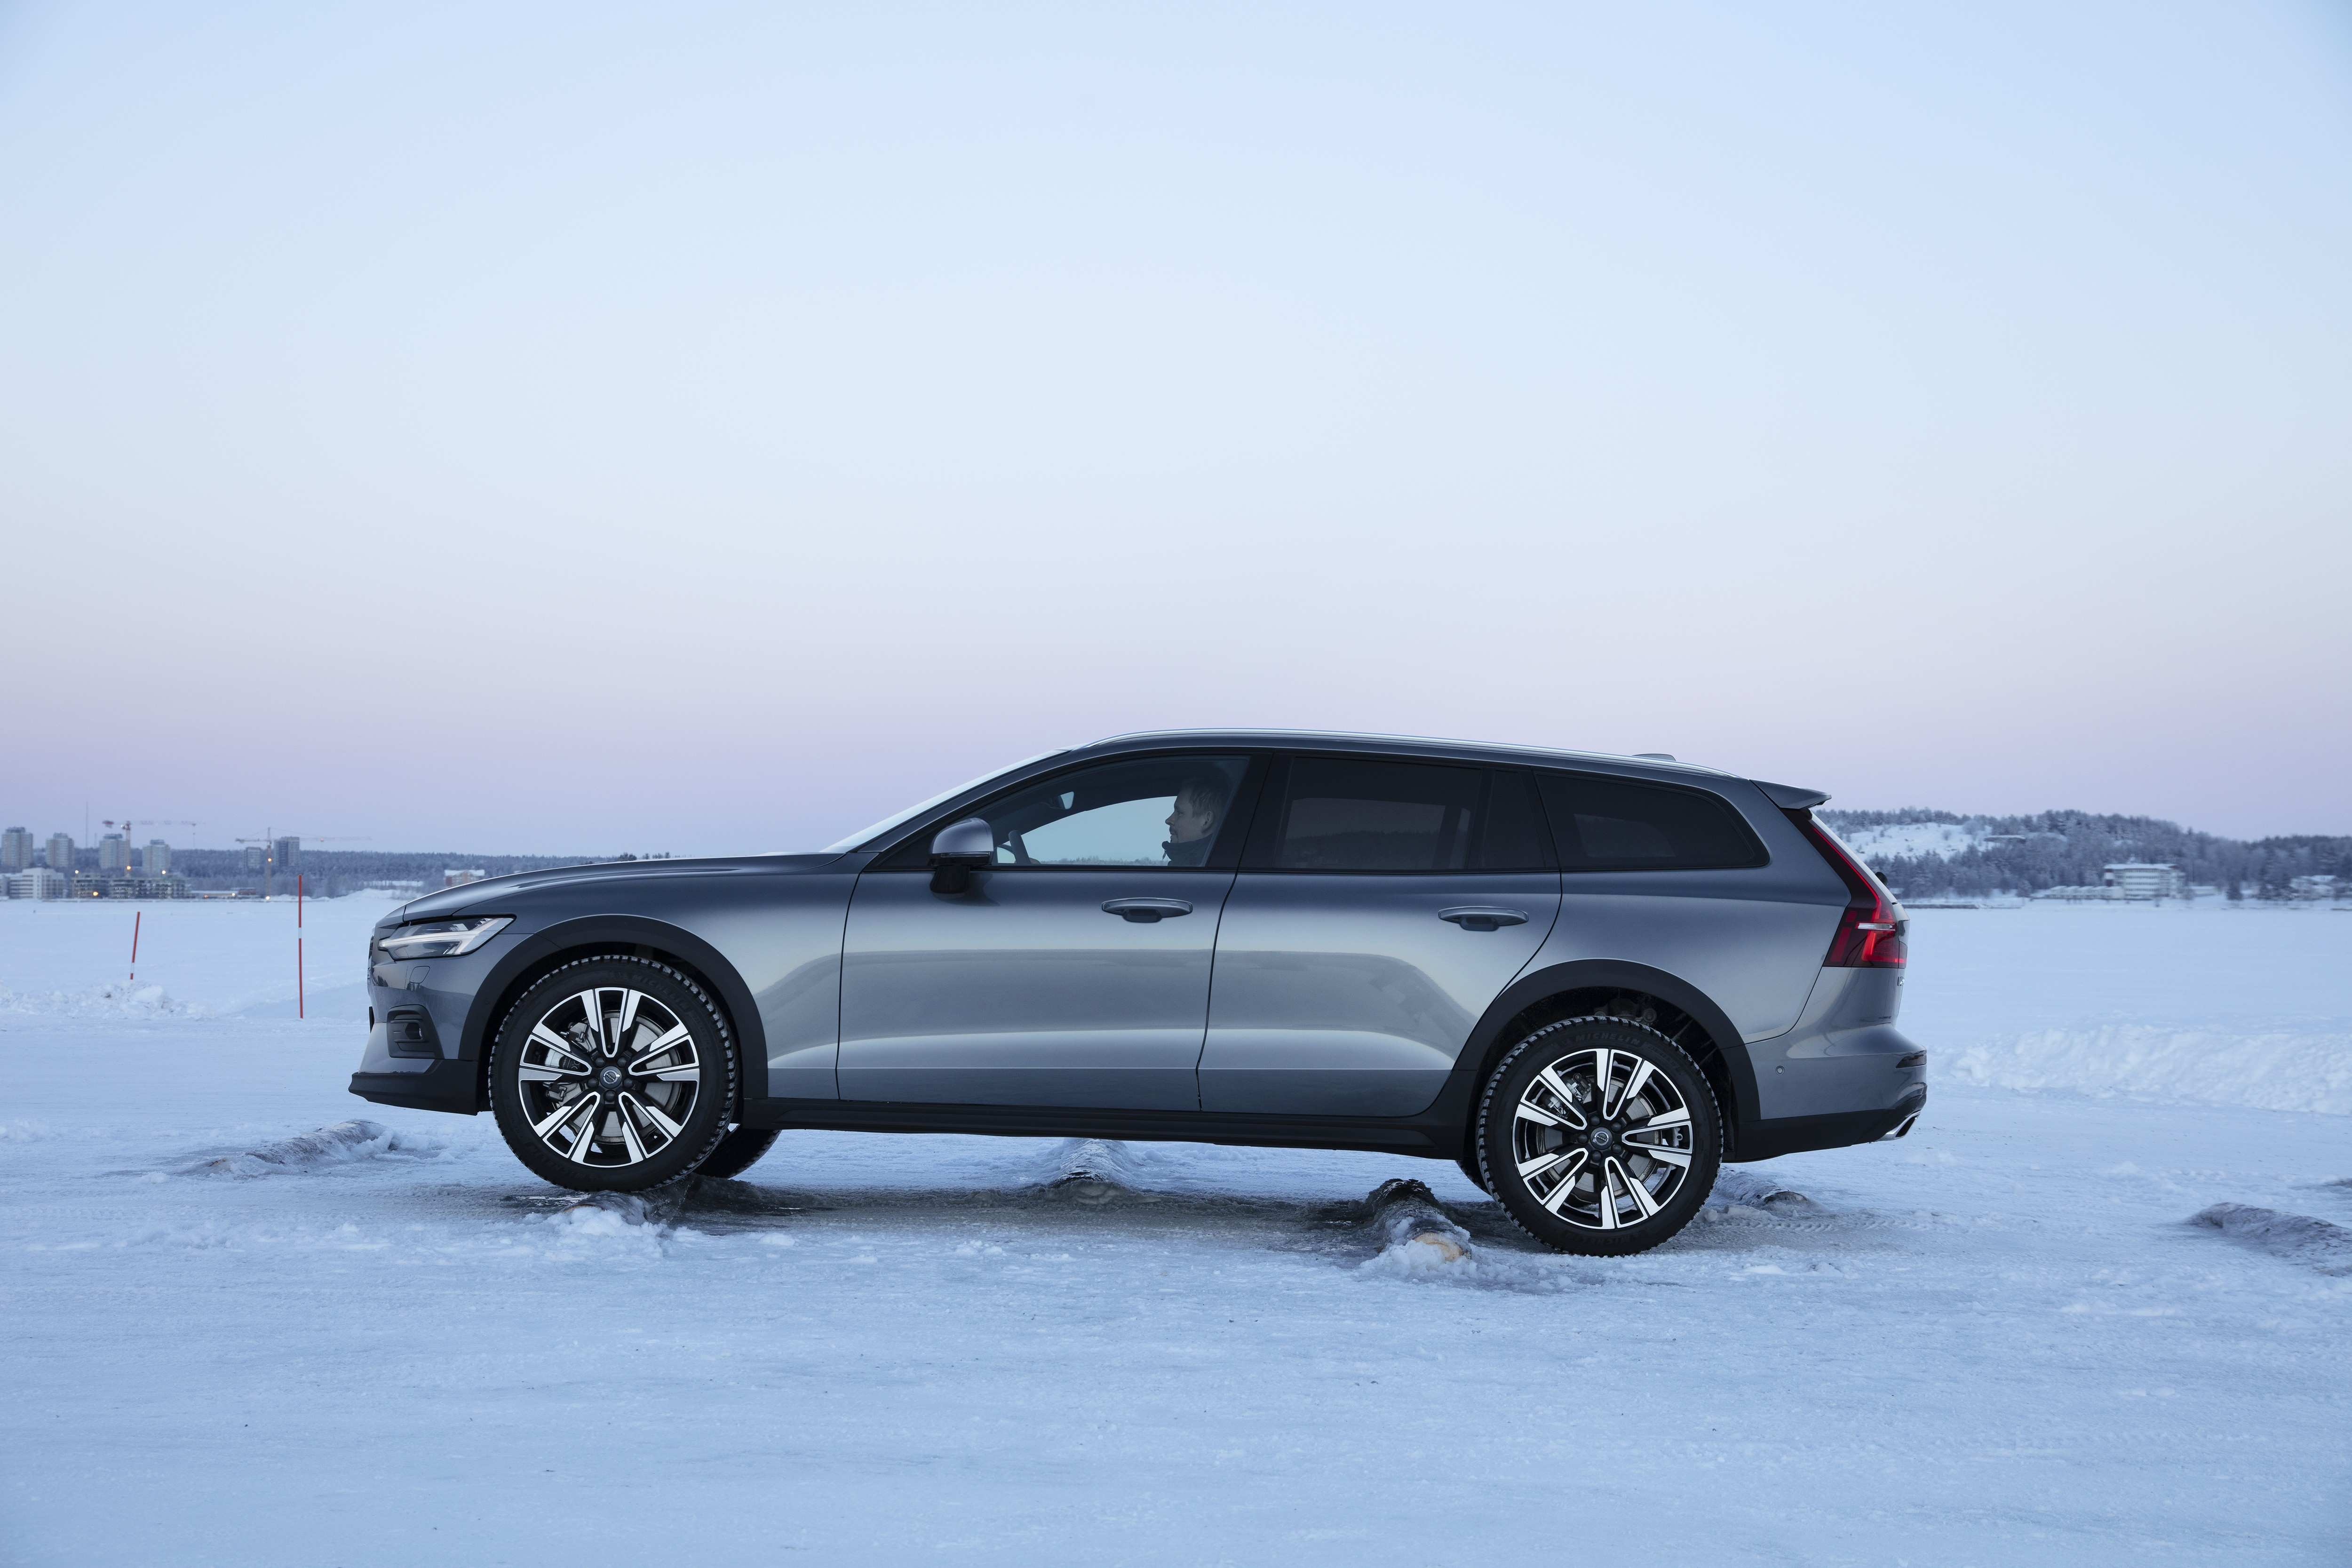 87 The 2020 Volvo V60 Cross Country Review And Release Date